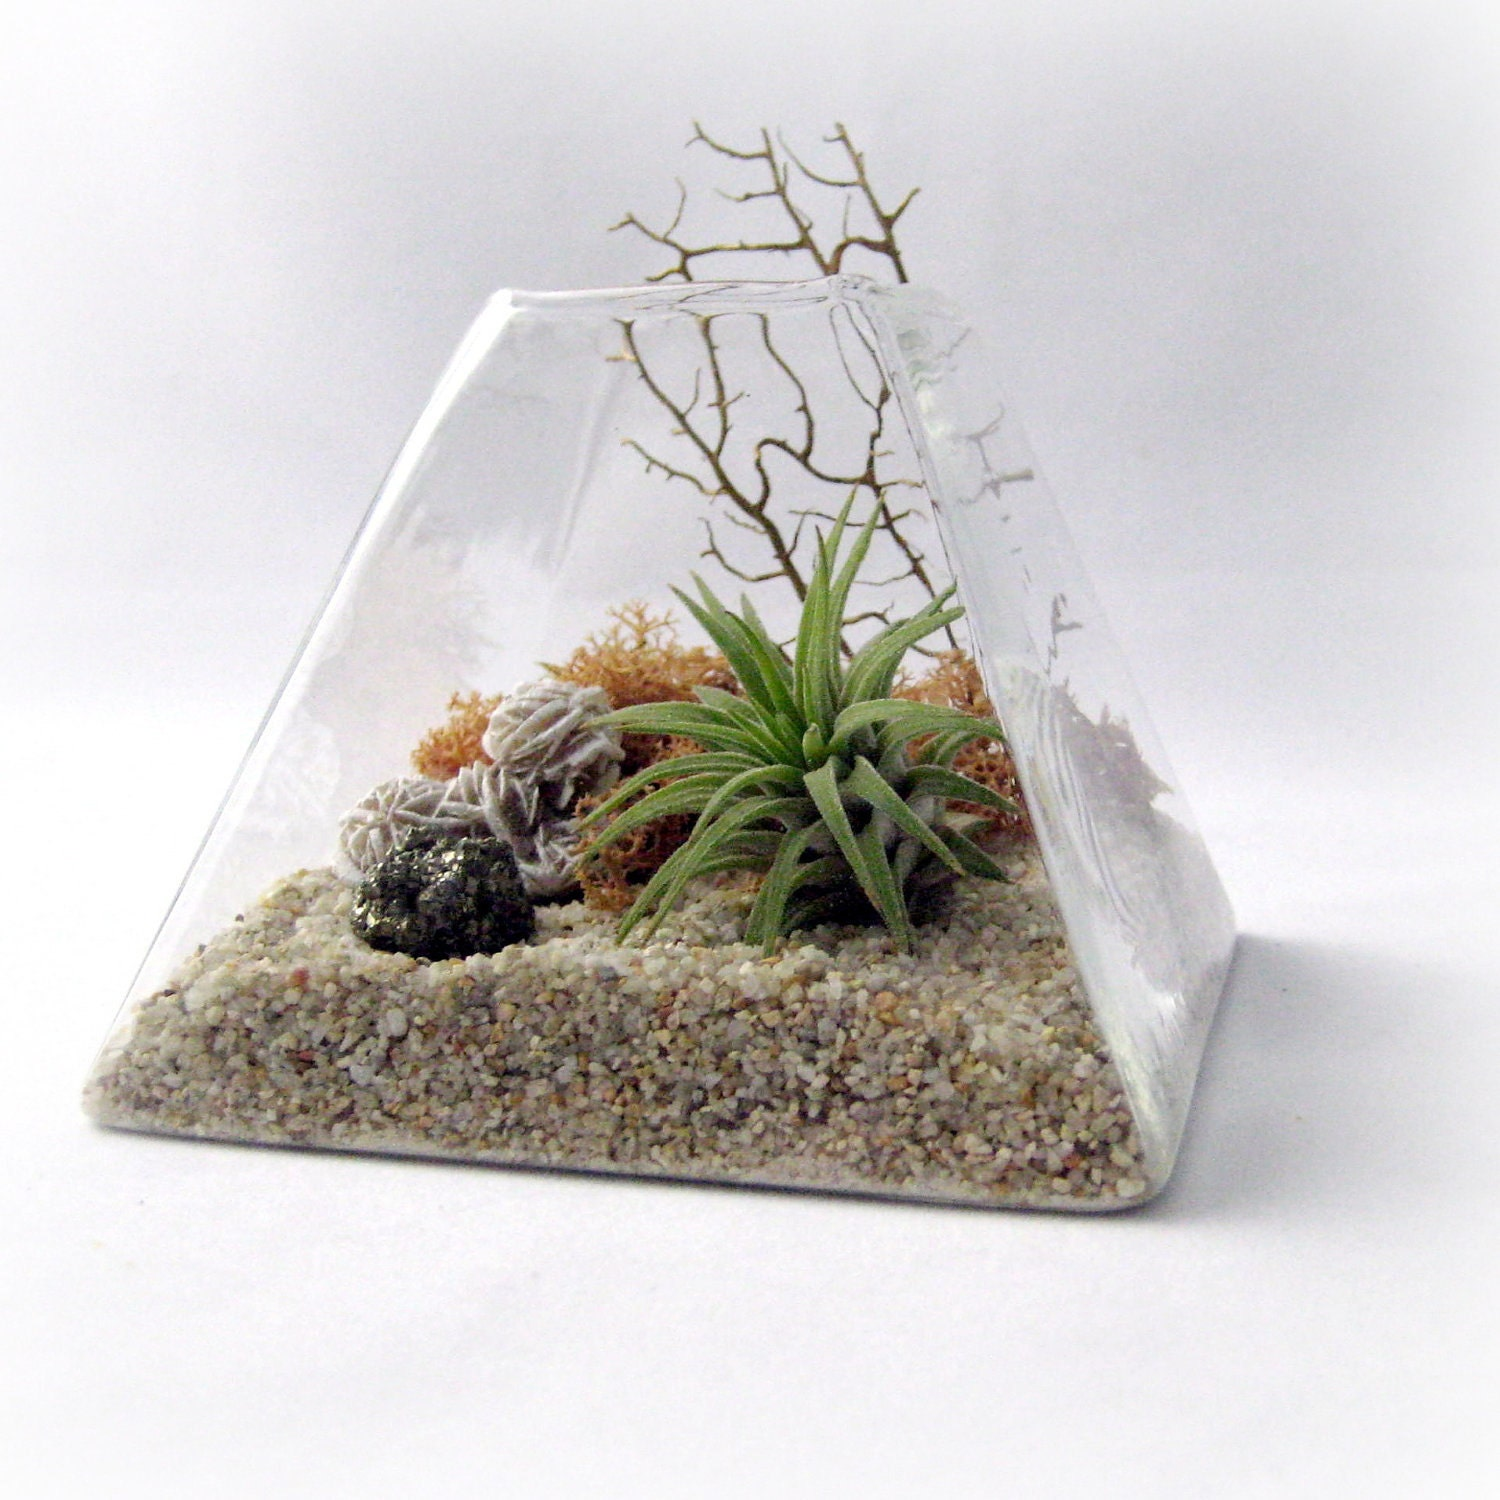 peach pyrite pyramid terrarium air plant by seaandasters. Black Bedroom Furniture Sets. Home Design Ideas